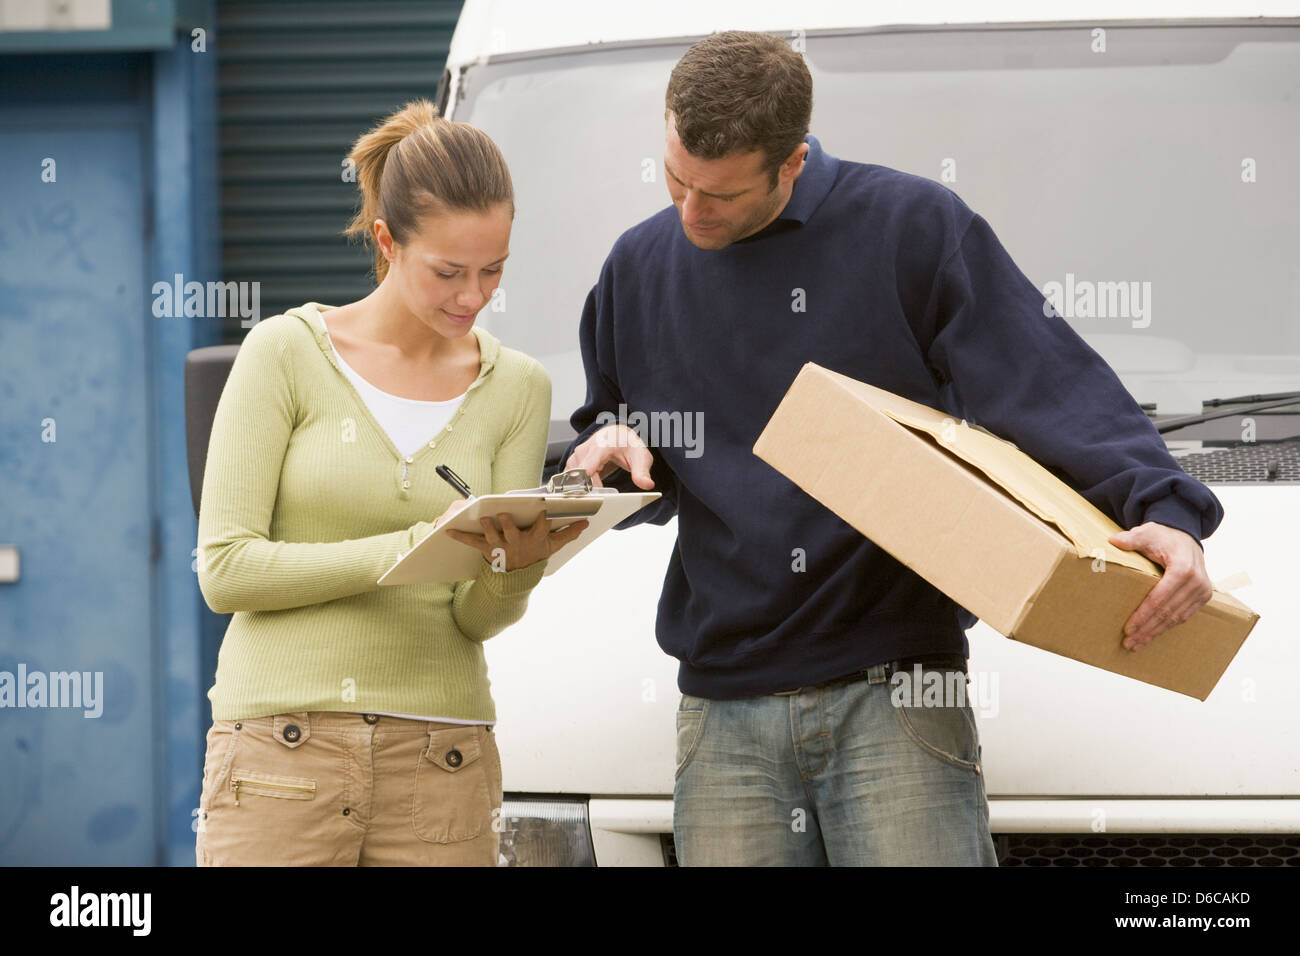 parcel service,addressee,confirmation receipt,delivery people - Stock Image